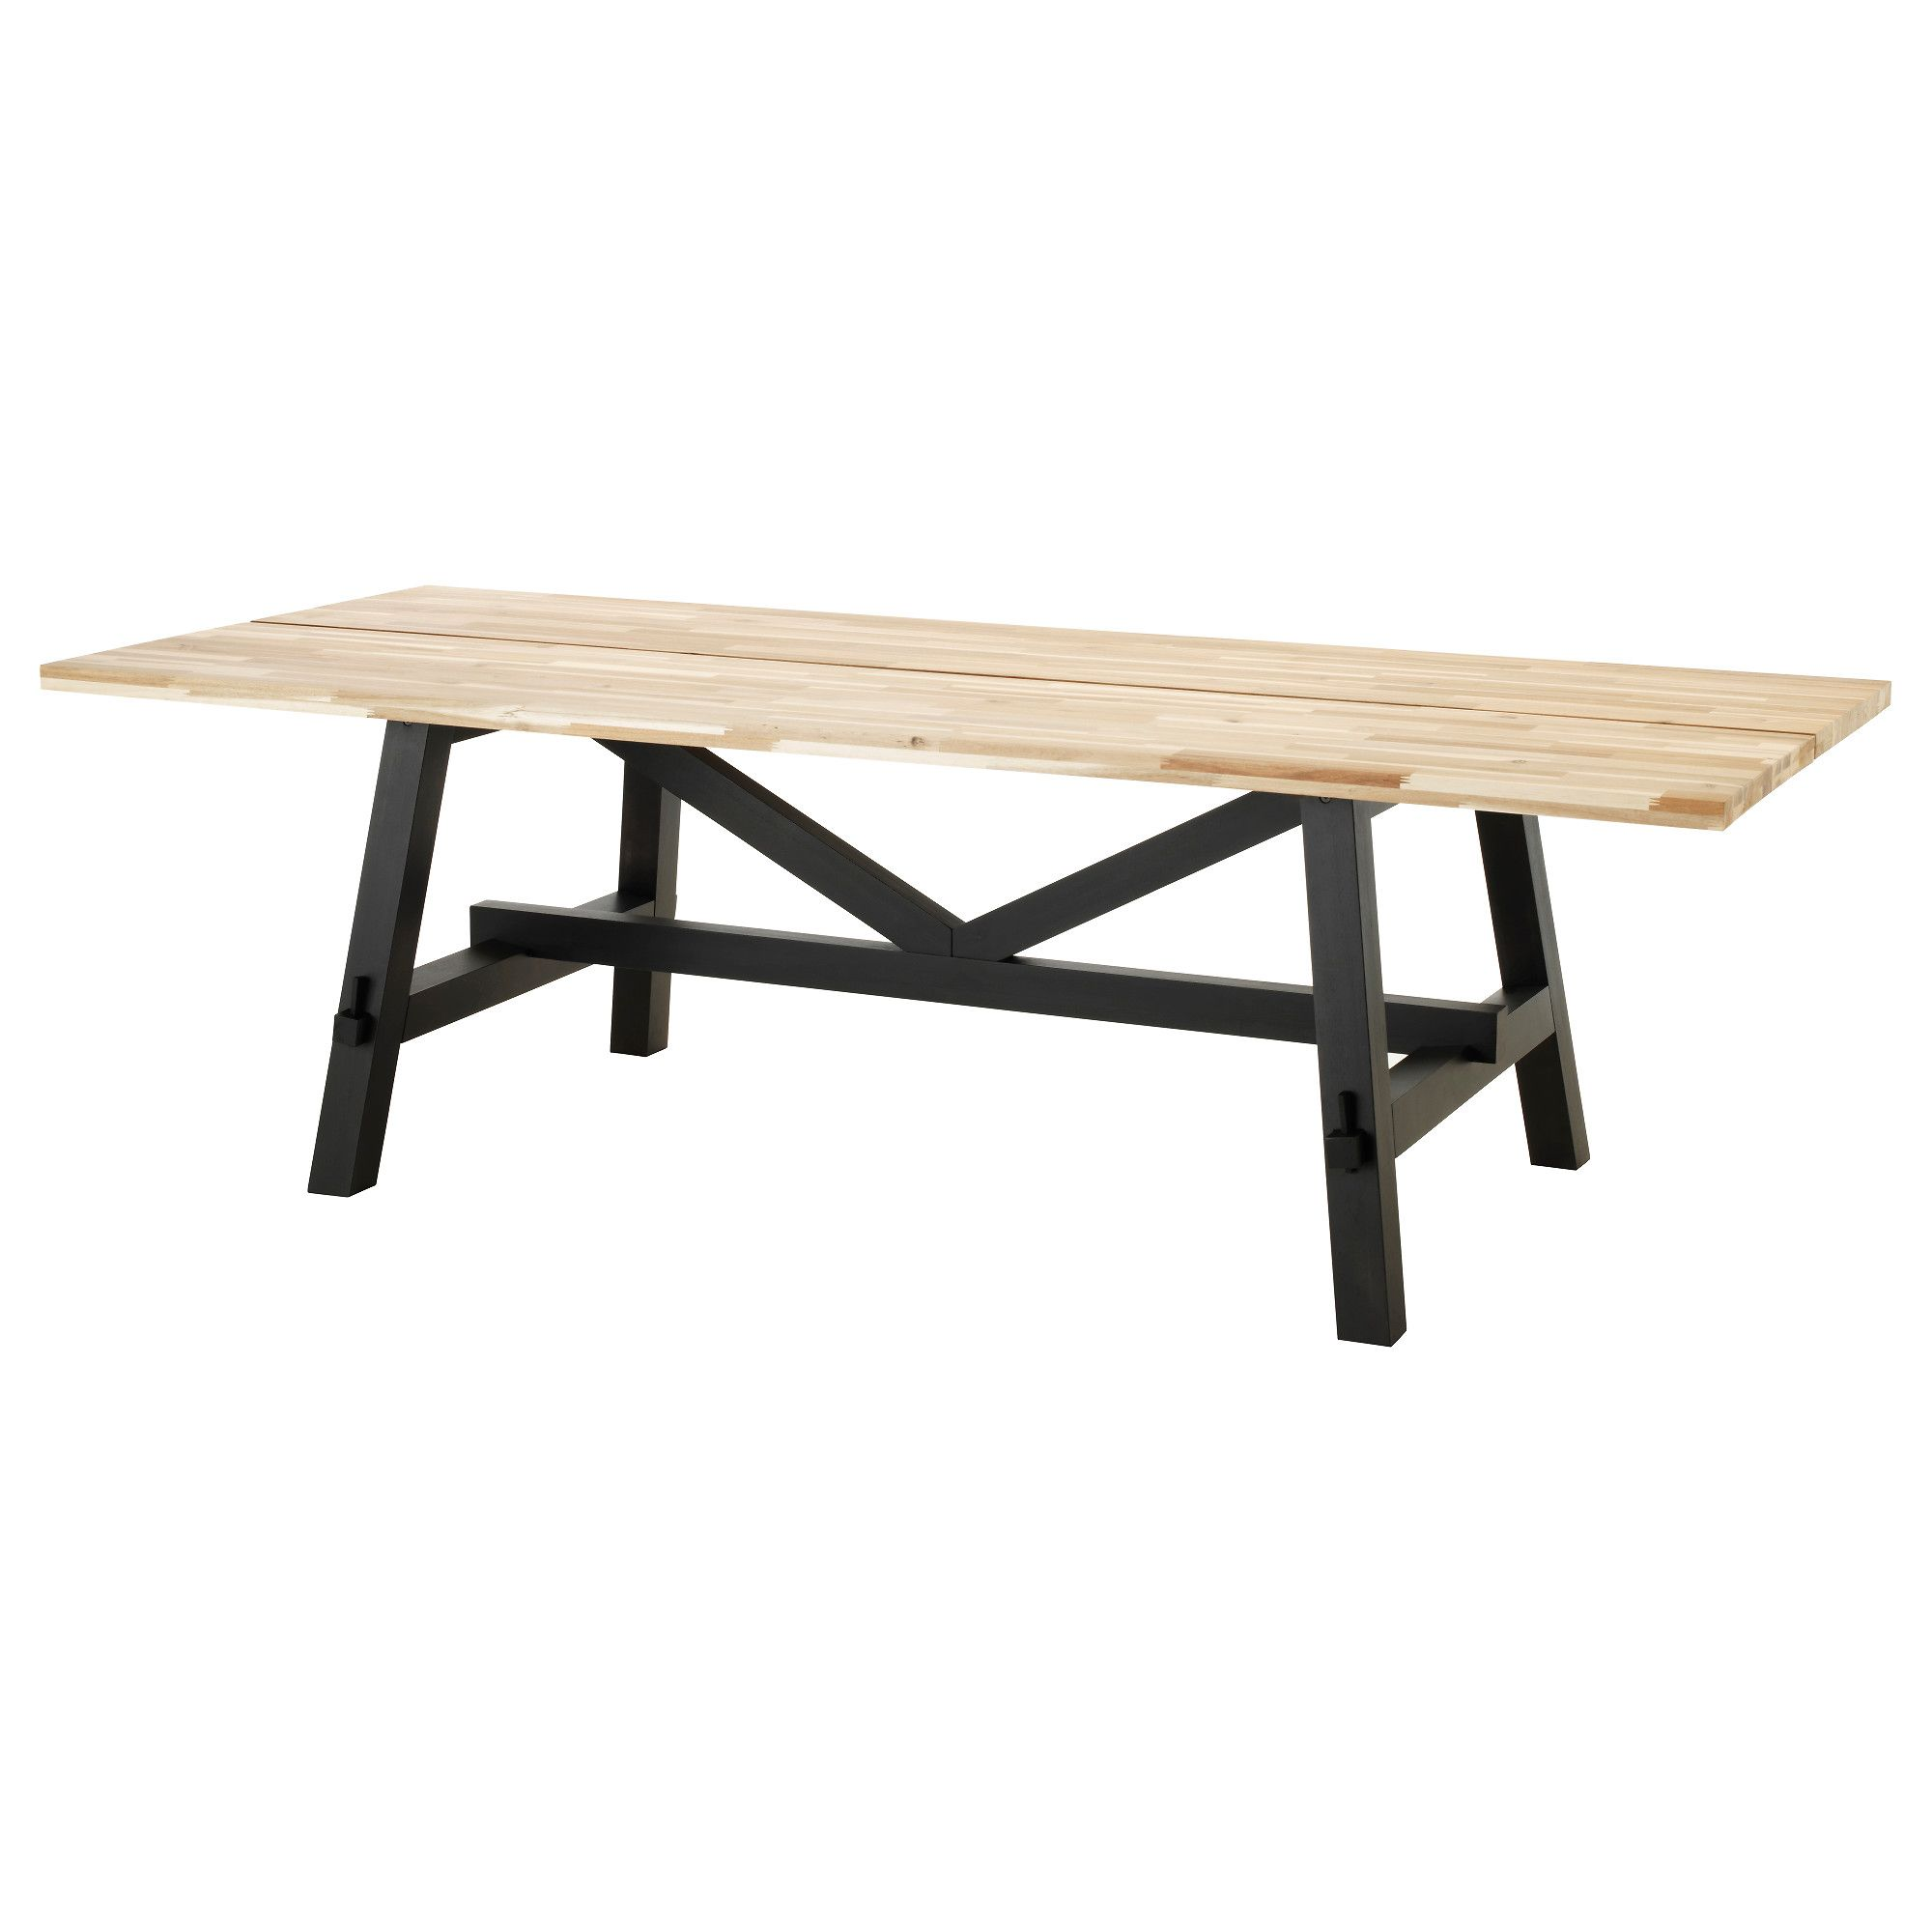 IKEA - SKOGSTA, Dining table, Every table is unique, with varying ...